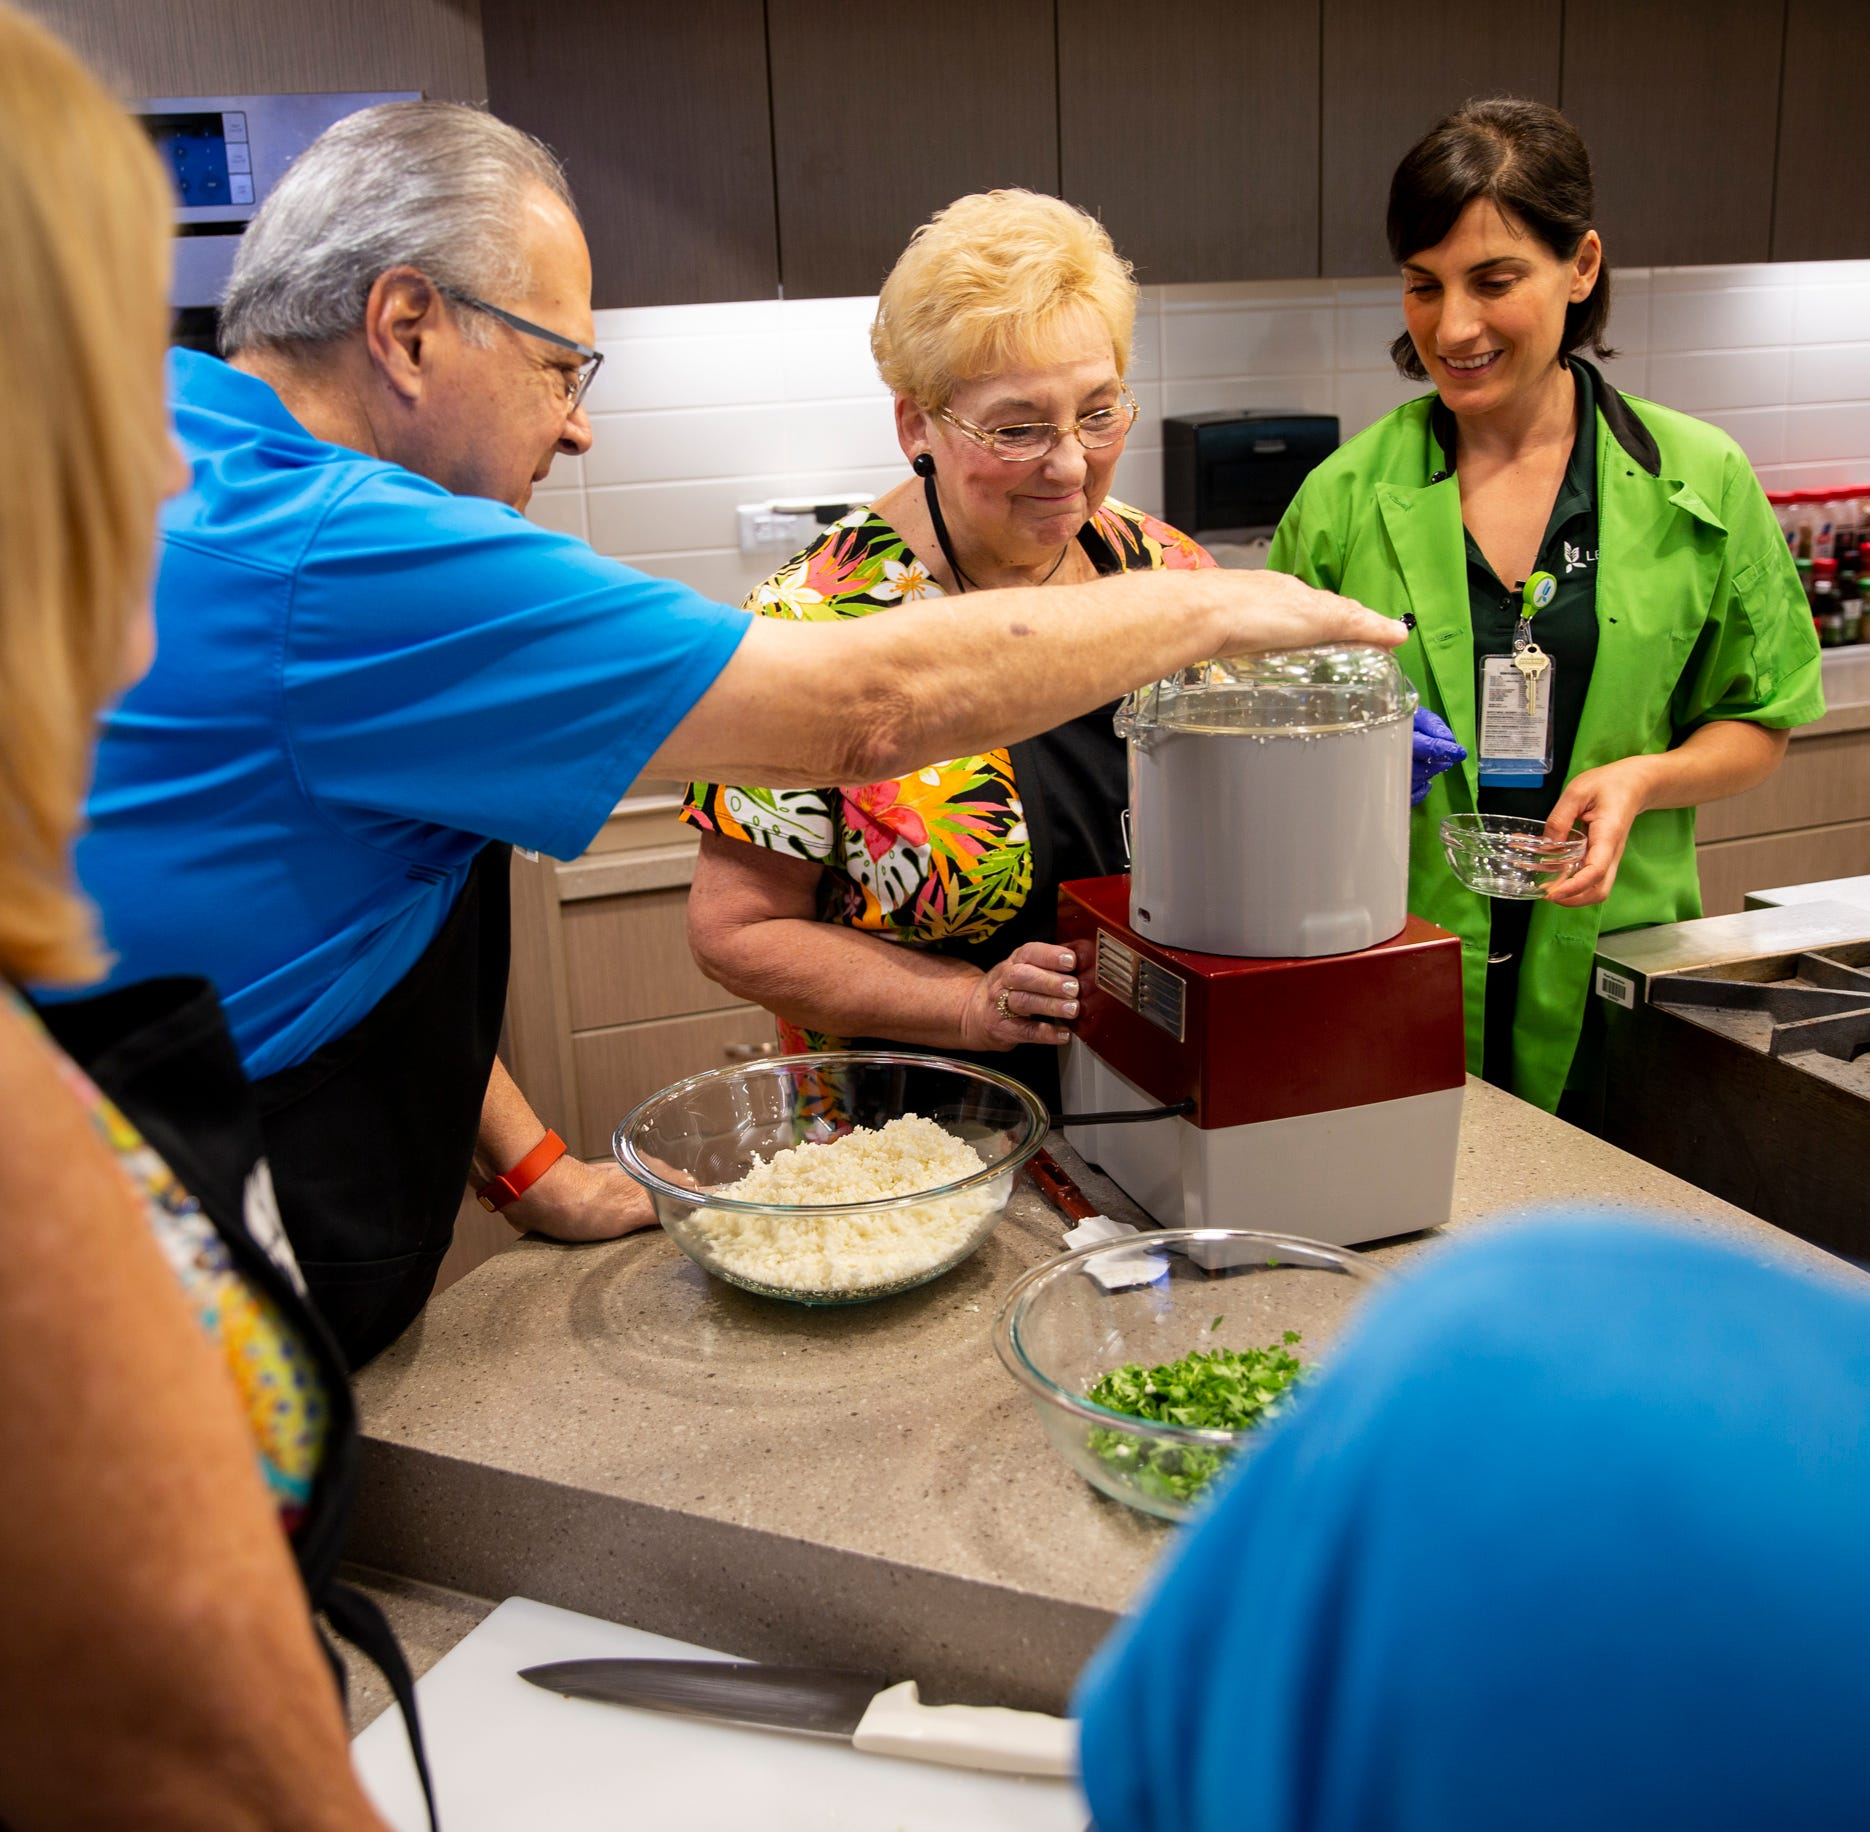 Nutrition key for heart health; Lee Health hosts food series for cardiac patients